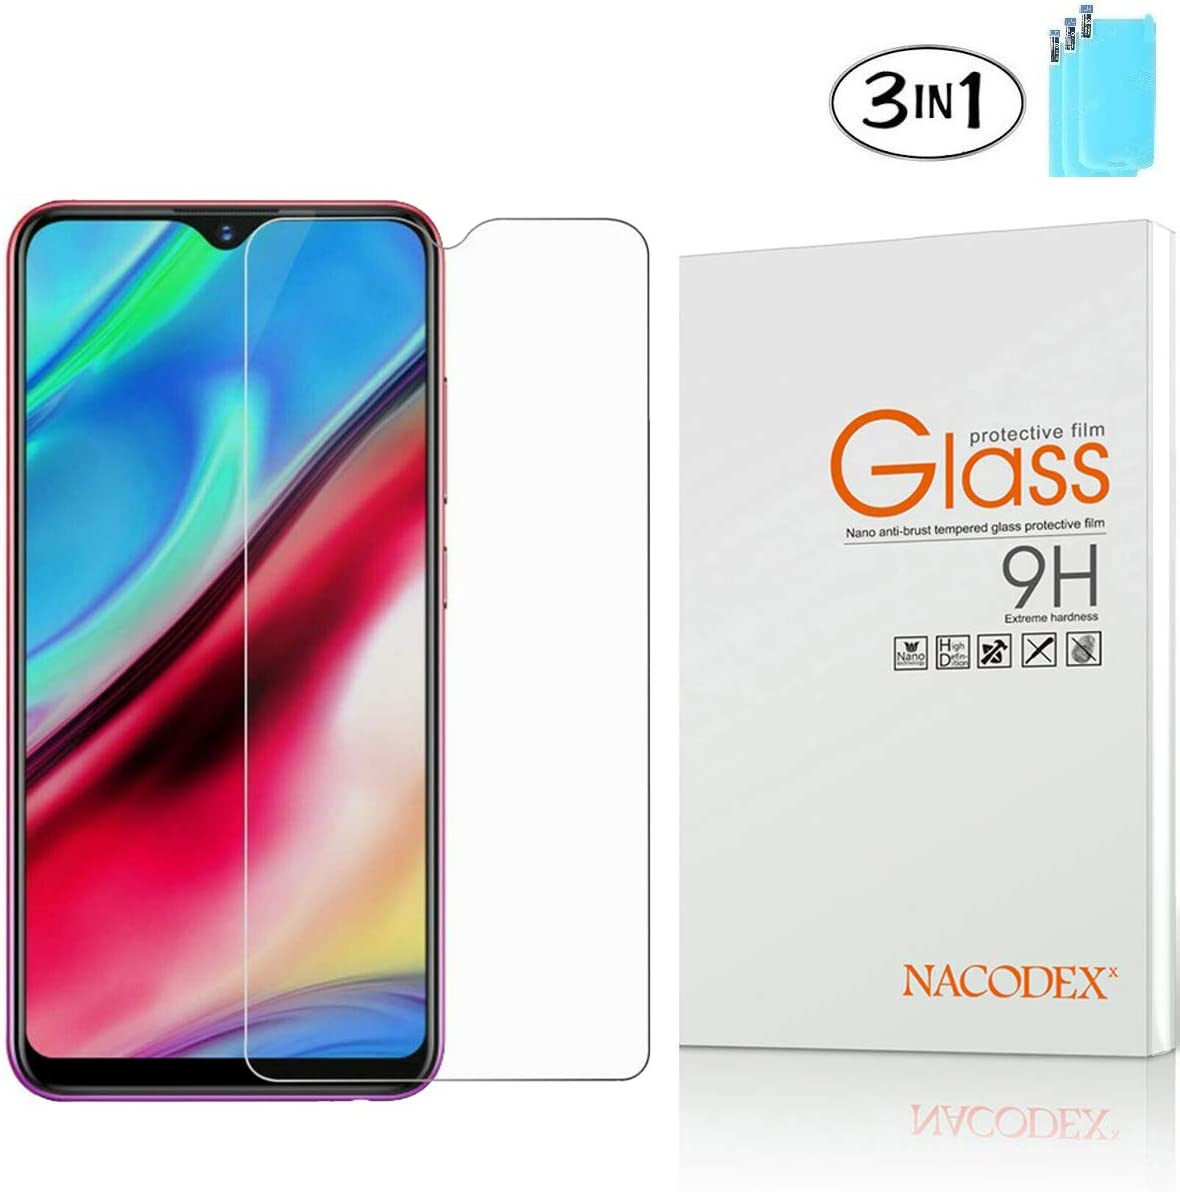 Color : Black JIANGNIUS Screen Protector 25 PCS for Galaxy A30 Anti-Glare Full Screen Tempered Glass Film Black